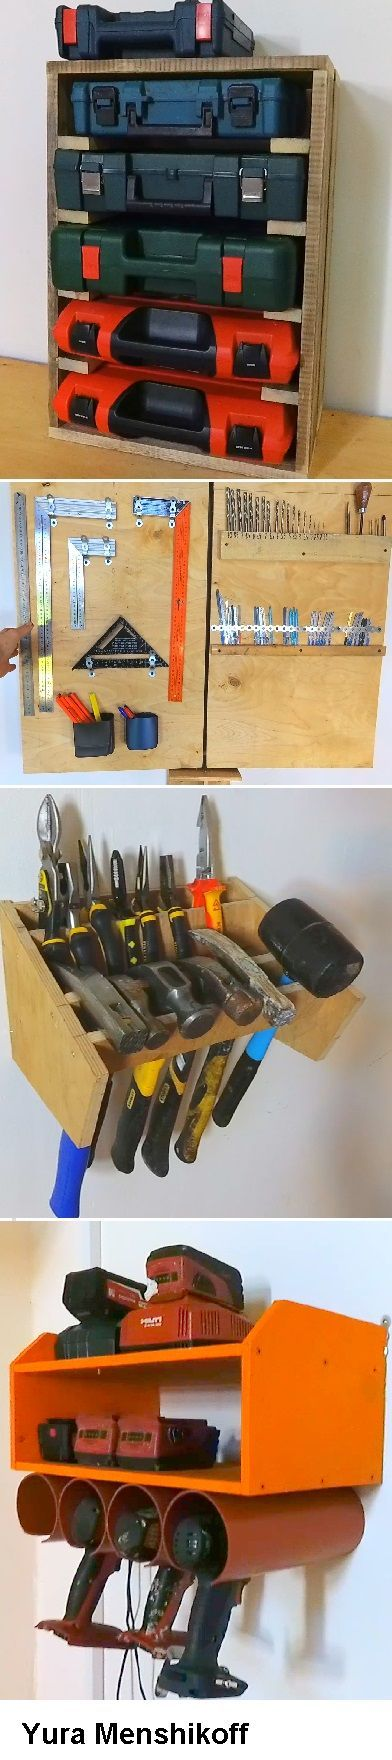 Garage organization tips ideas diy pictures of gar... - #DIY #gar #Garage #Ideas #Organization #pictures #tips #workbench #garageideasstorage